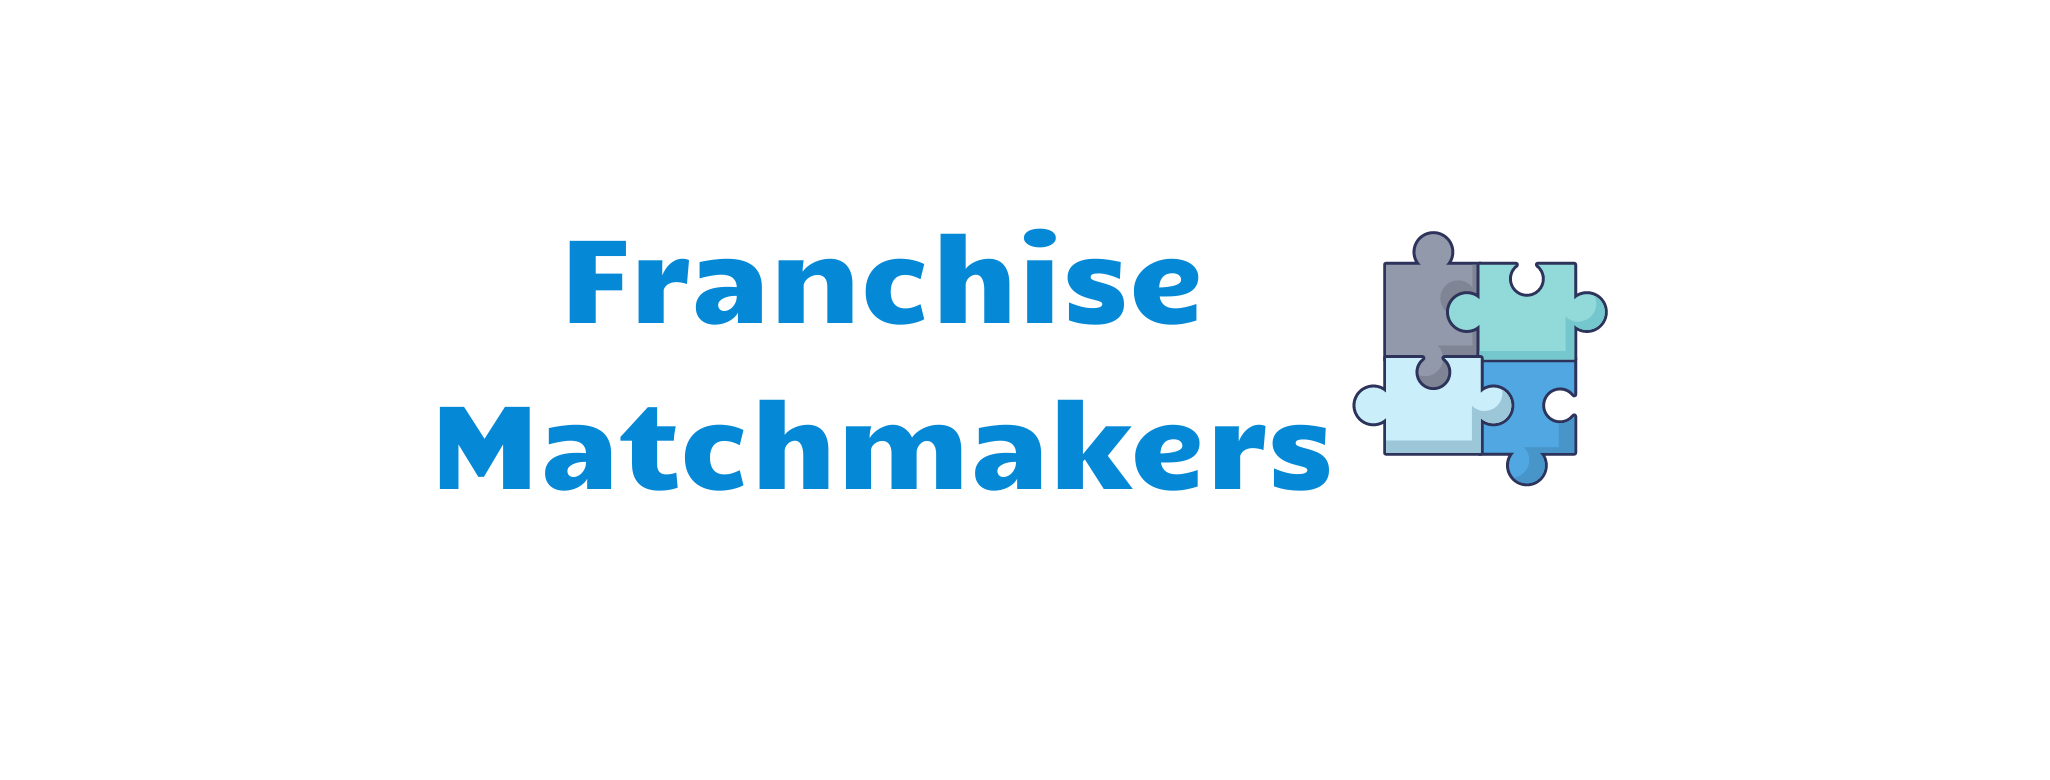 Denver-Based Franchise Consultancy Launches Website to Match Franchisees with New Franchise Opportunities Amidst Pandemic